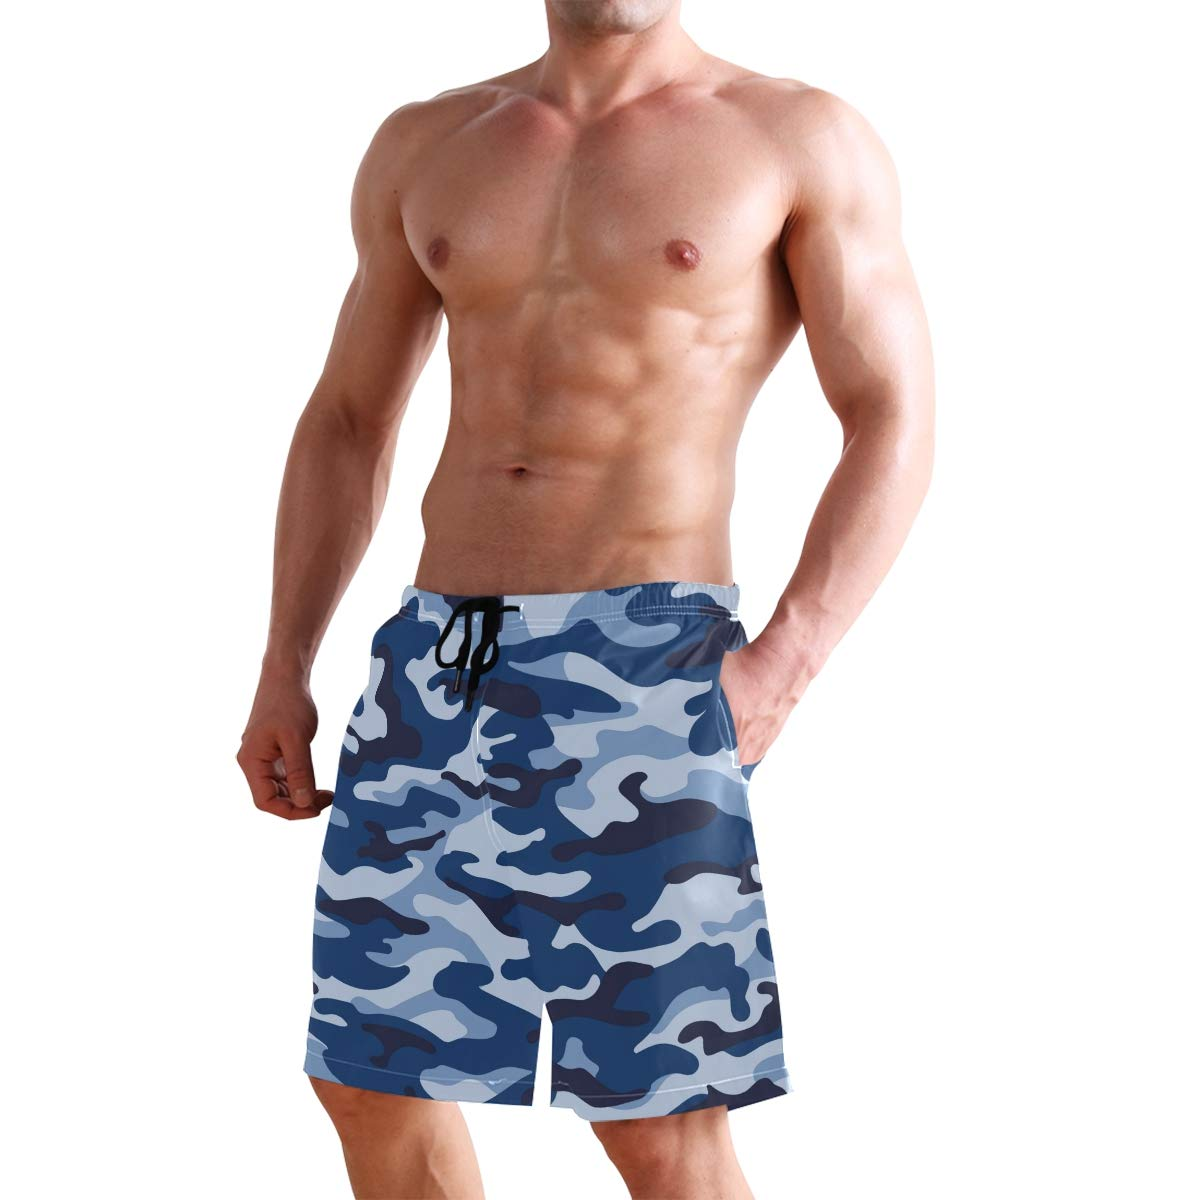 CENHOME Mens Swim Trunks Blue Navy Grey Camouflage Color Beach Board Shorts